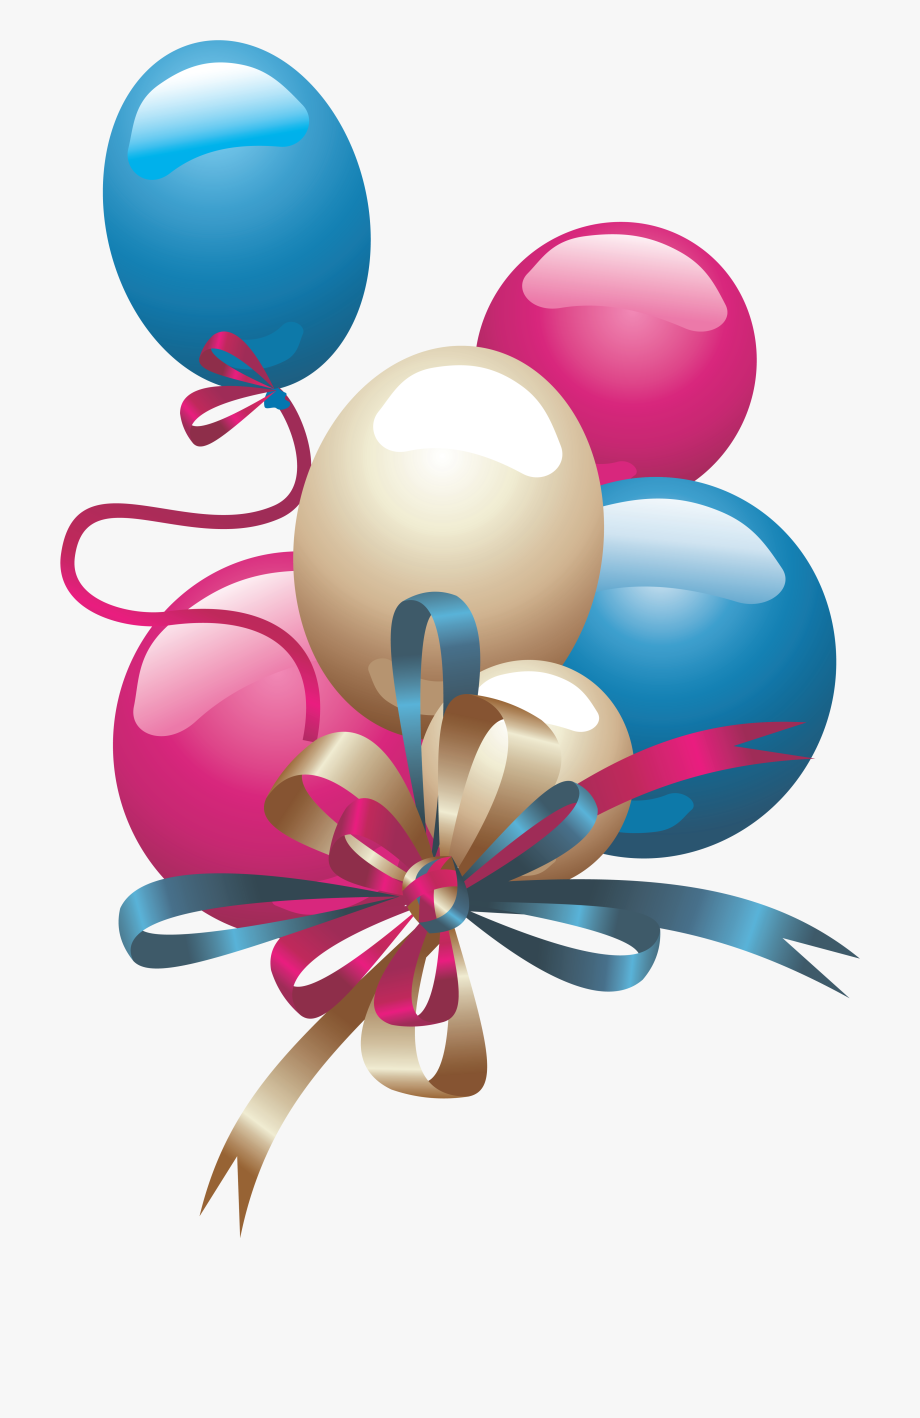 Happy Birthday Balloons Png Image File Clip Art.